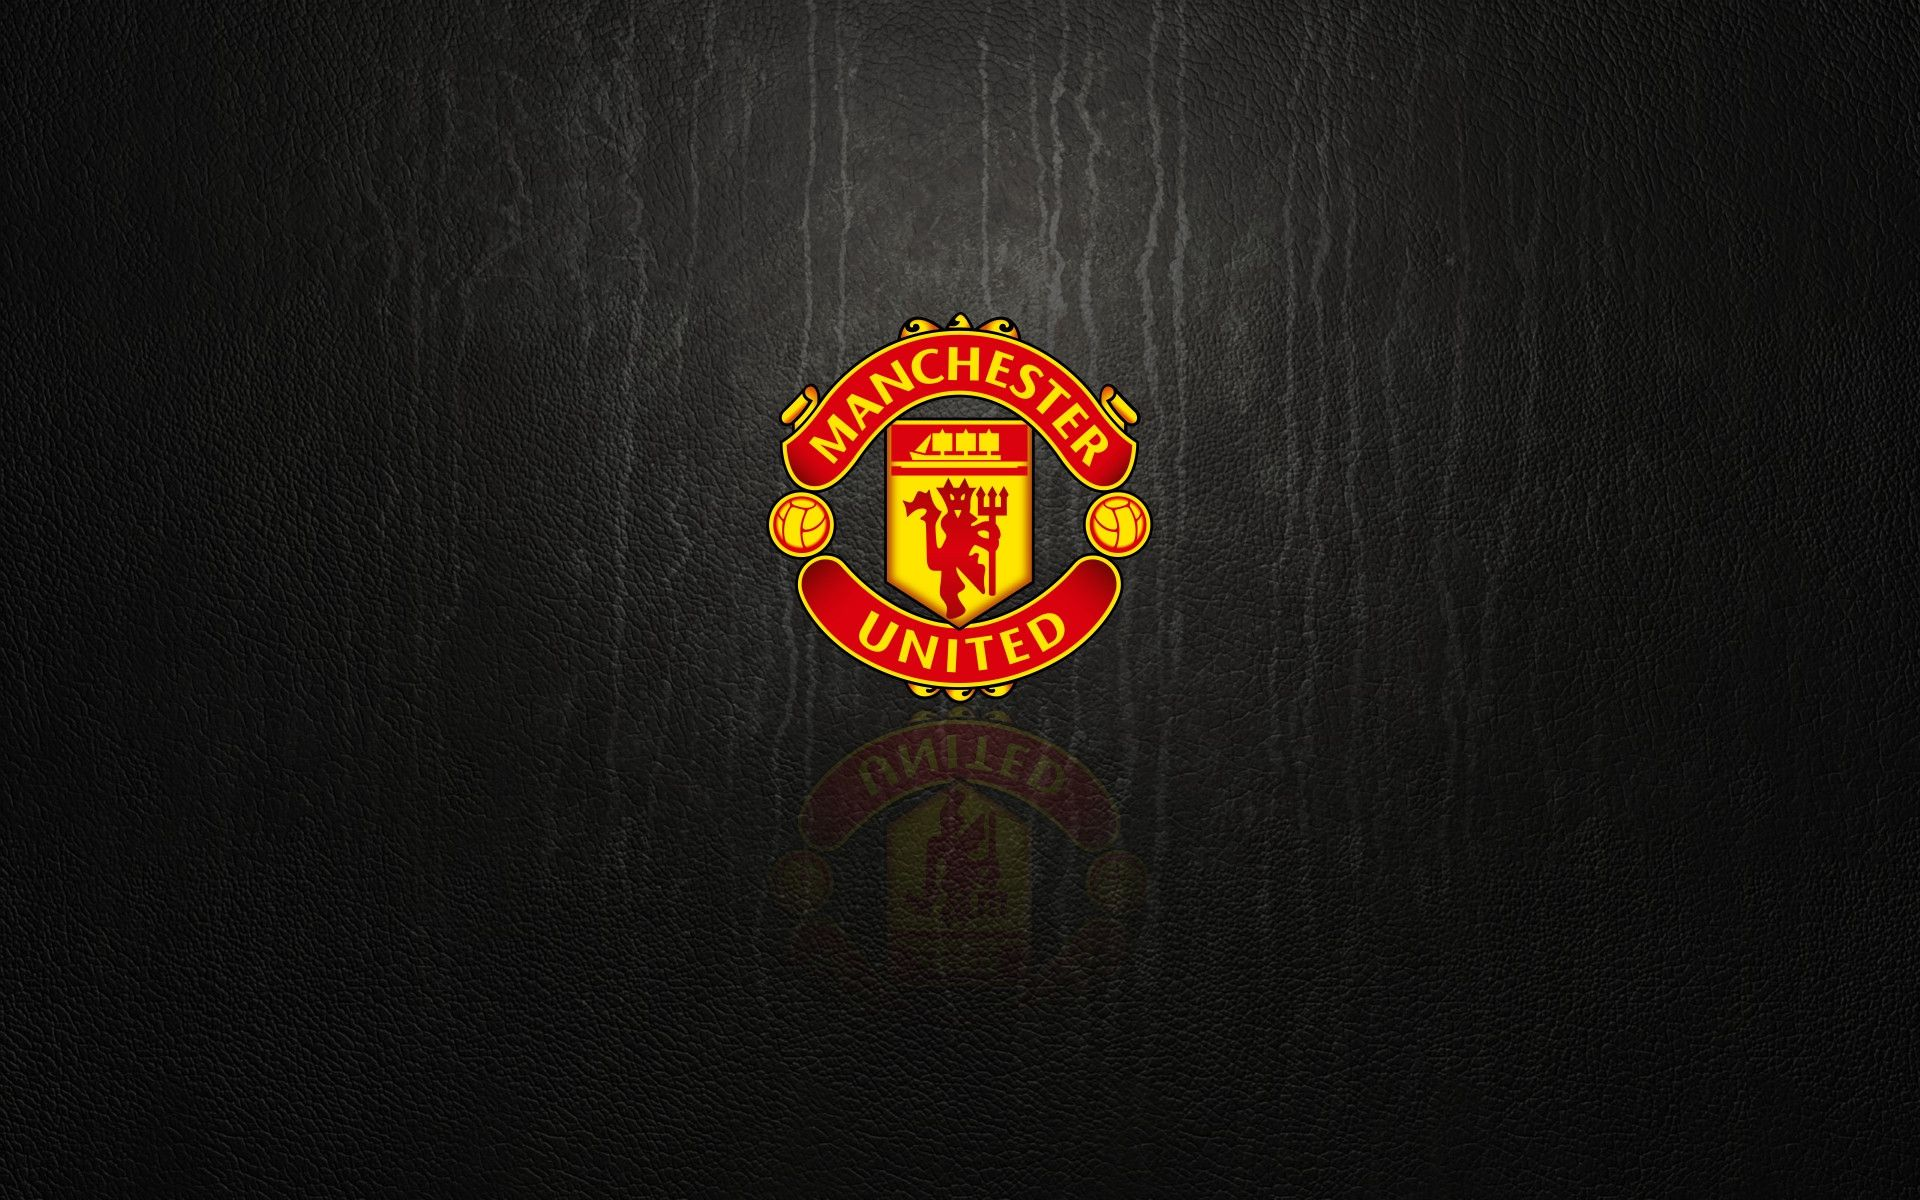 Hd wallpaper manchester united - Hd Background Manchester United Jersey Football Logo White Black 1920x1200